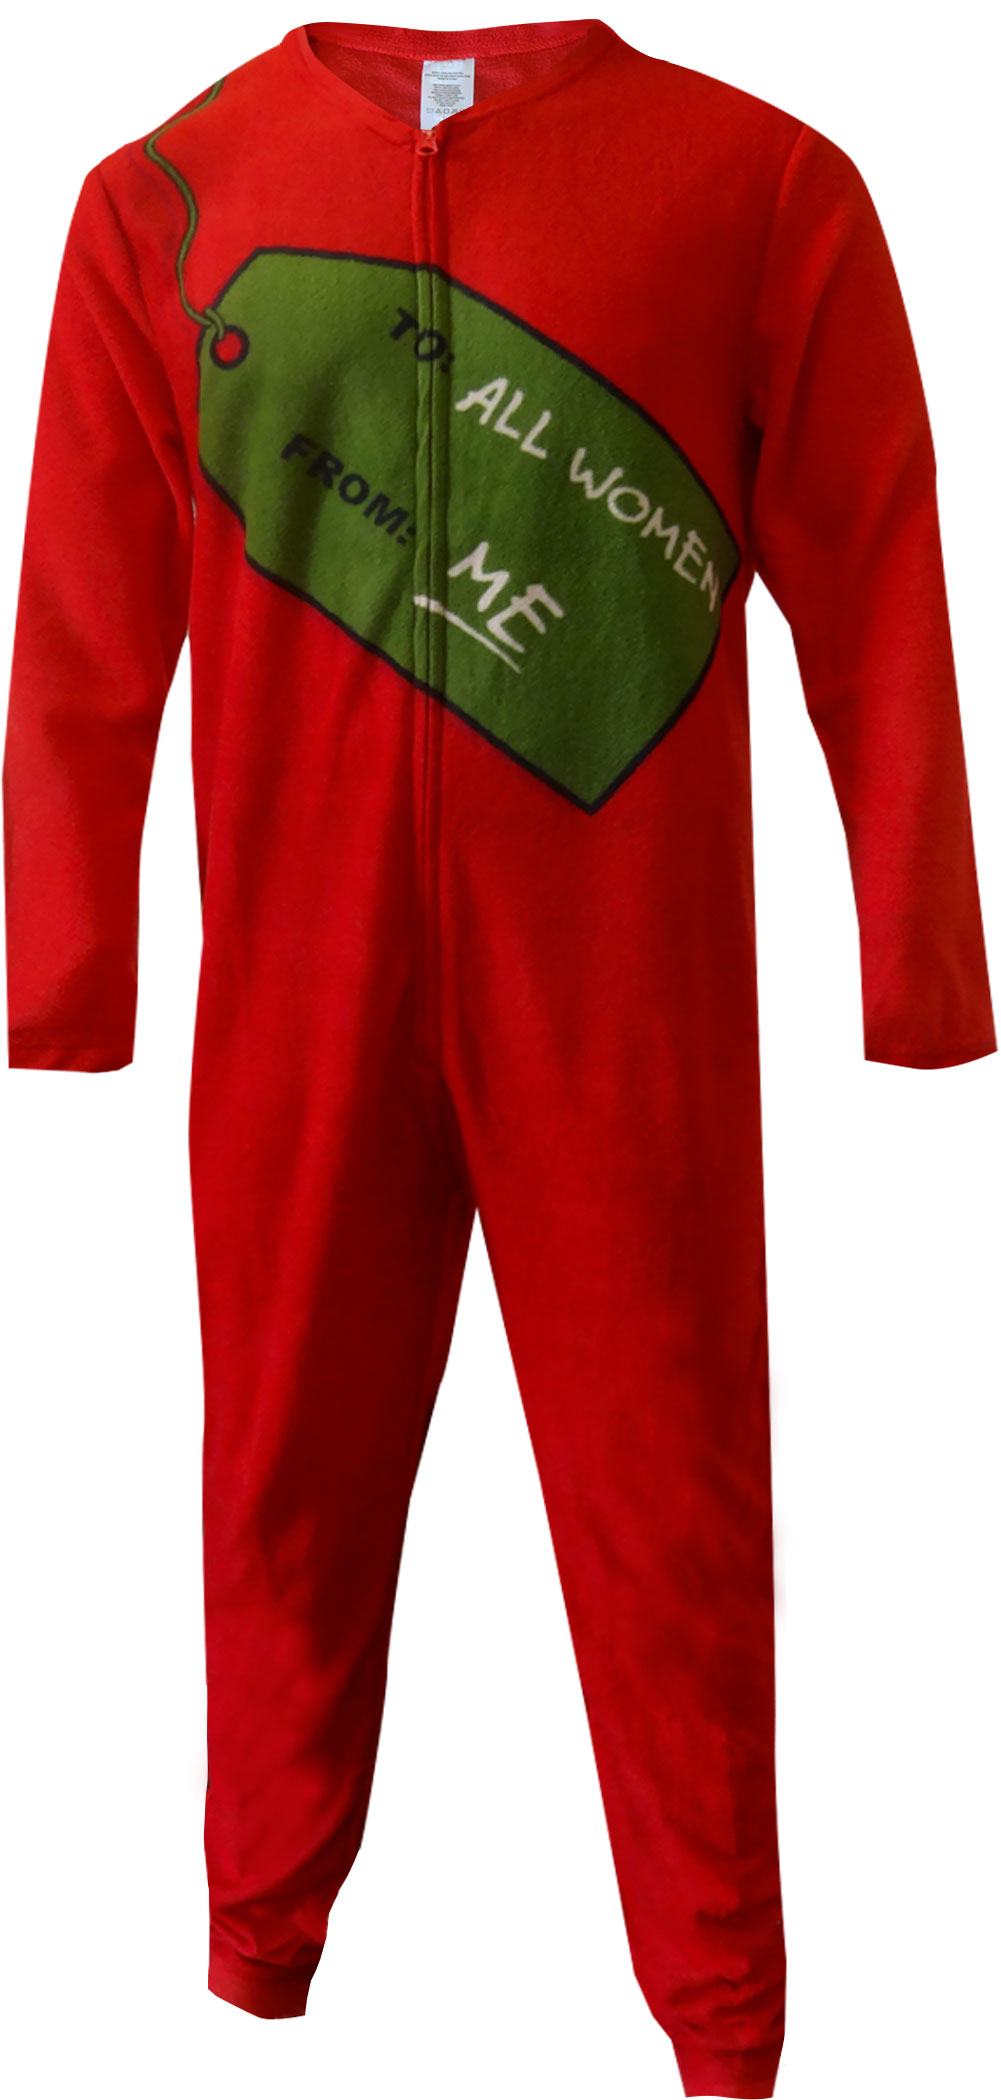 bioworld merchandising christmas present gift to all women one piece union suit pajama walmartcom